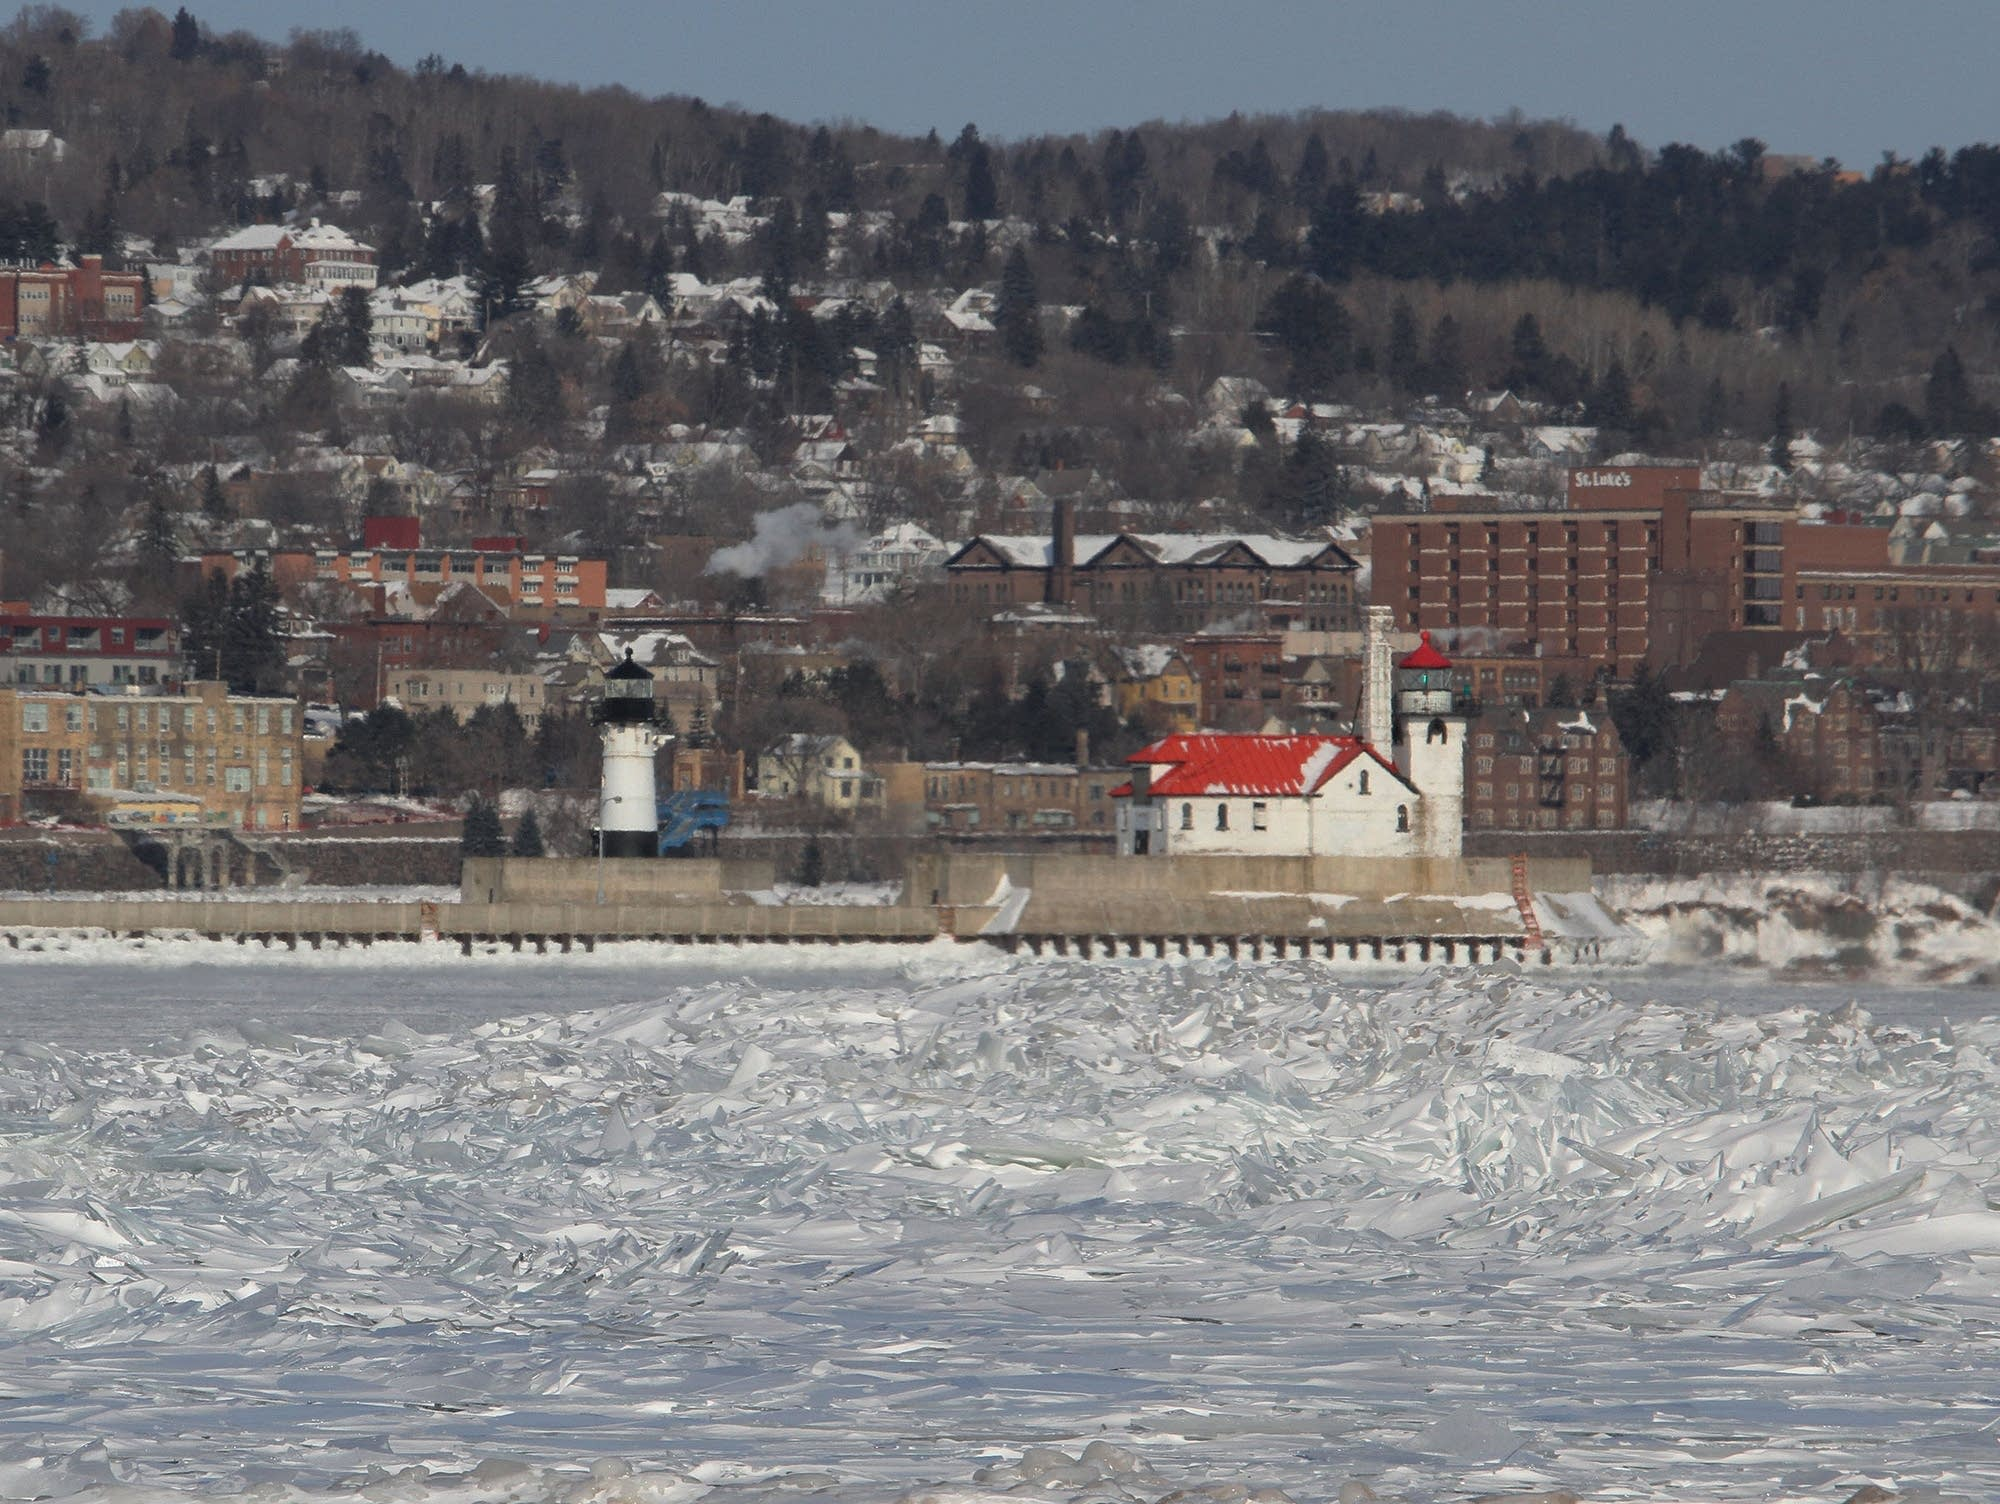 The Duluth North Pier (left) and South Breakwater lighthouses